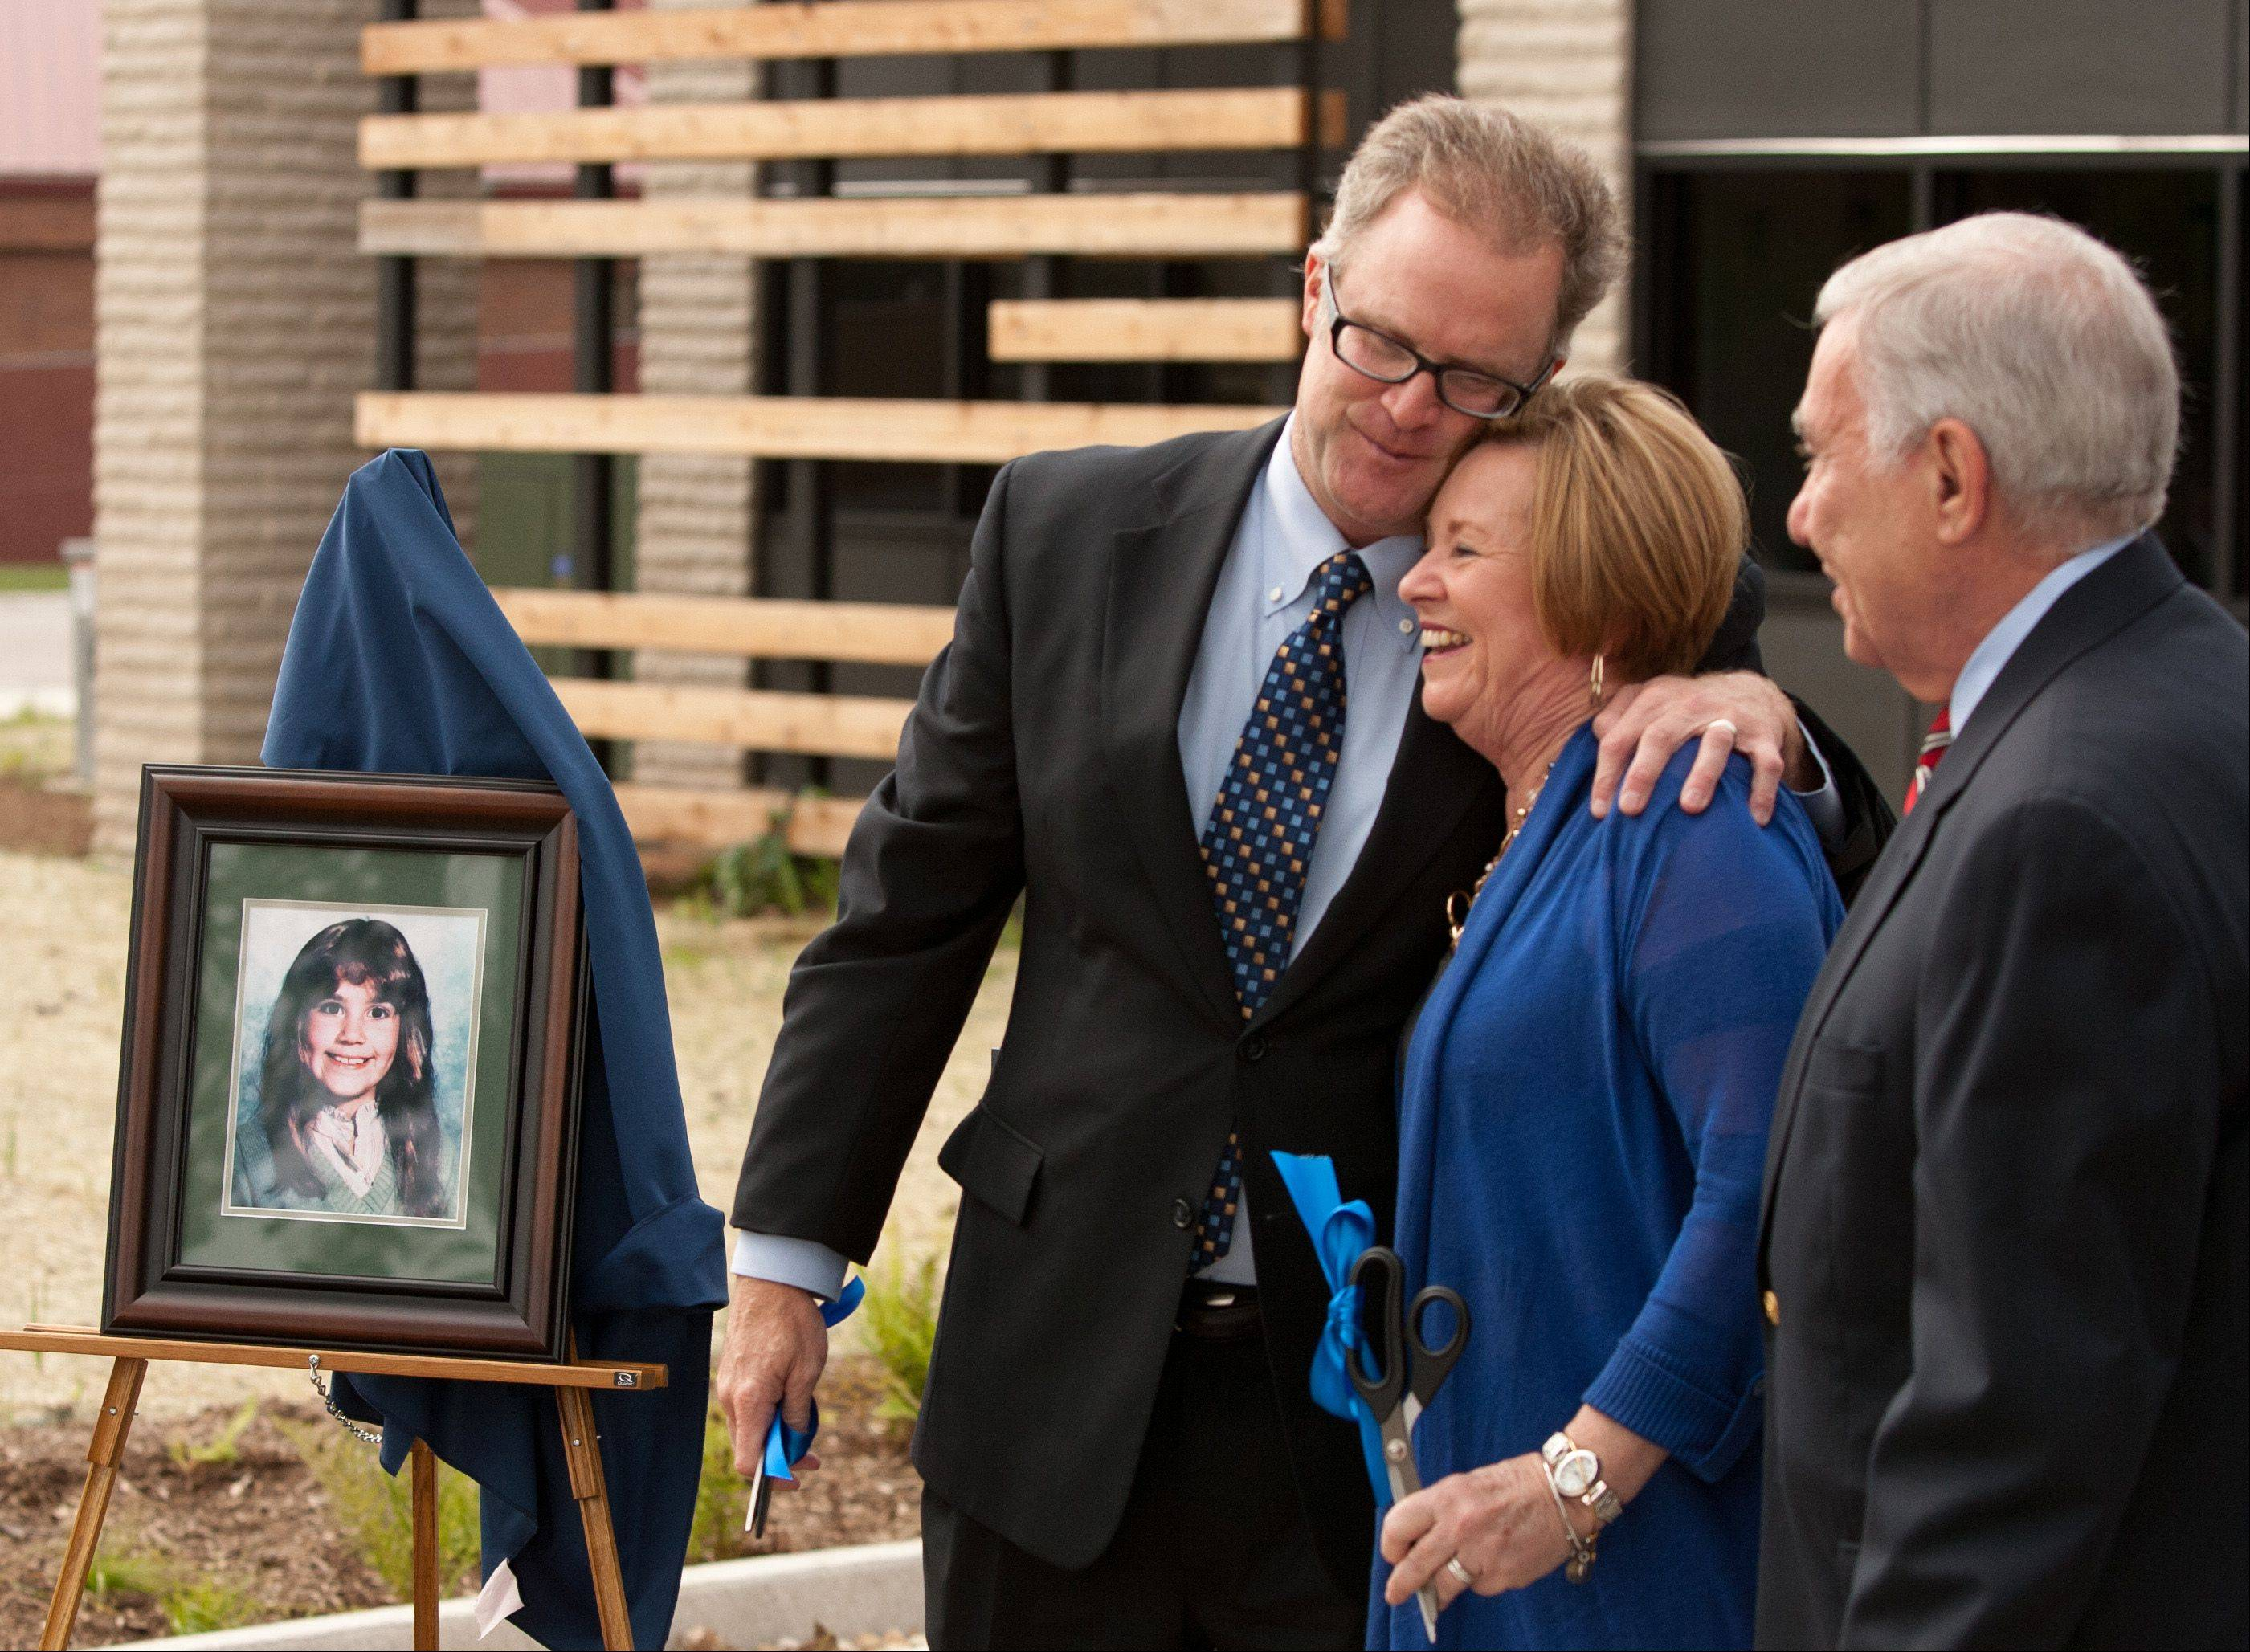 DuPage County Board Chairman Dan Cronin embraces Patricia Nicarico while her husband, Tom, looks on in September as DuPage County officials dedicate the new Jeanine Nicarico Children's Advocacy Center in Wheaton.